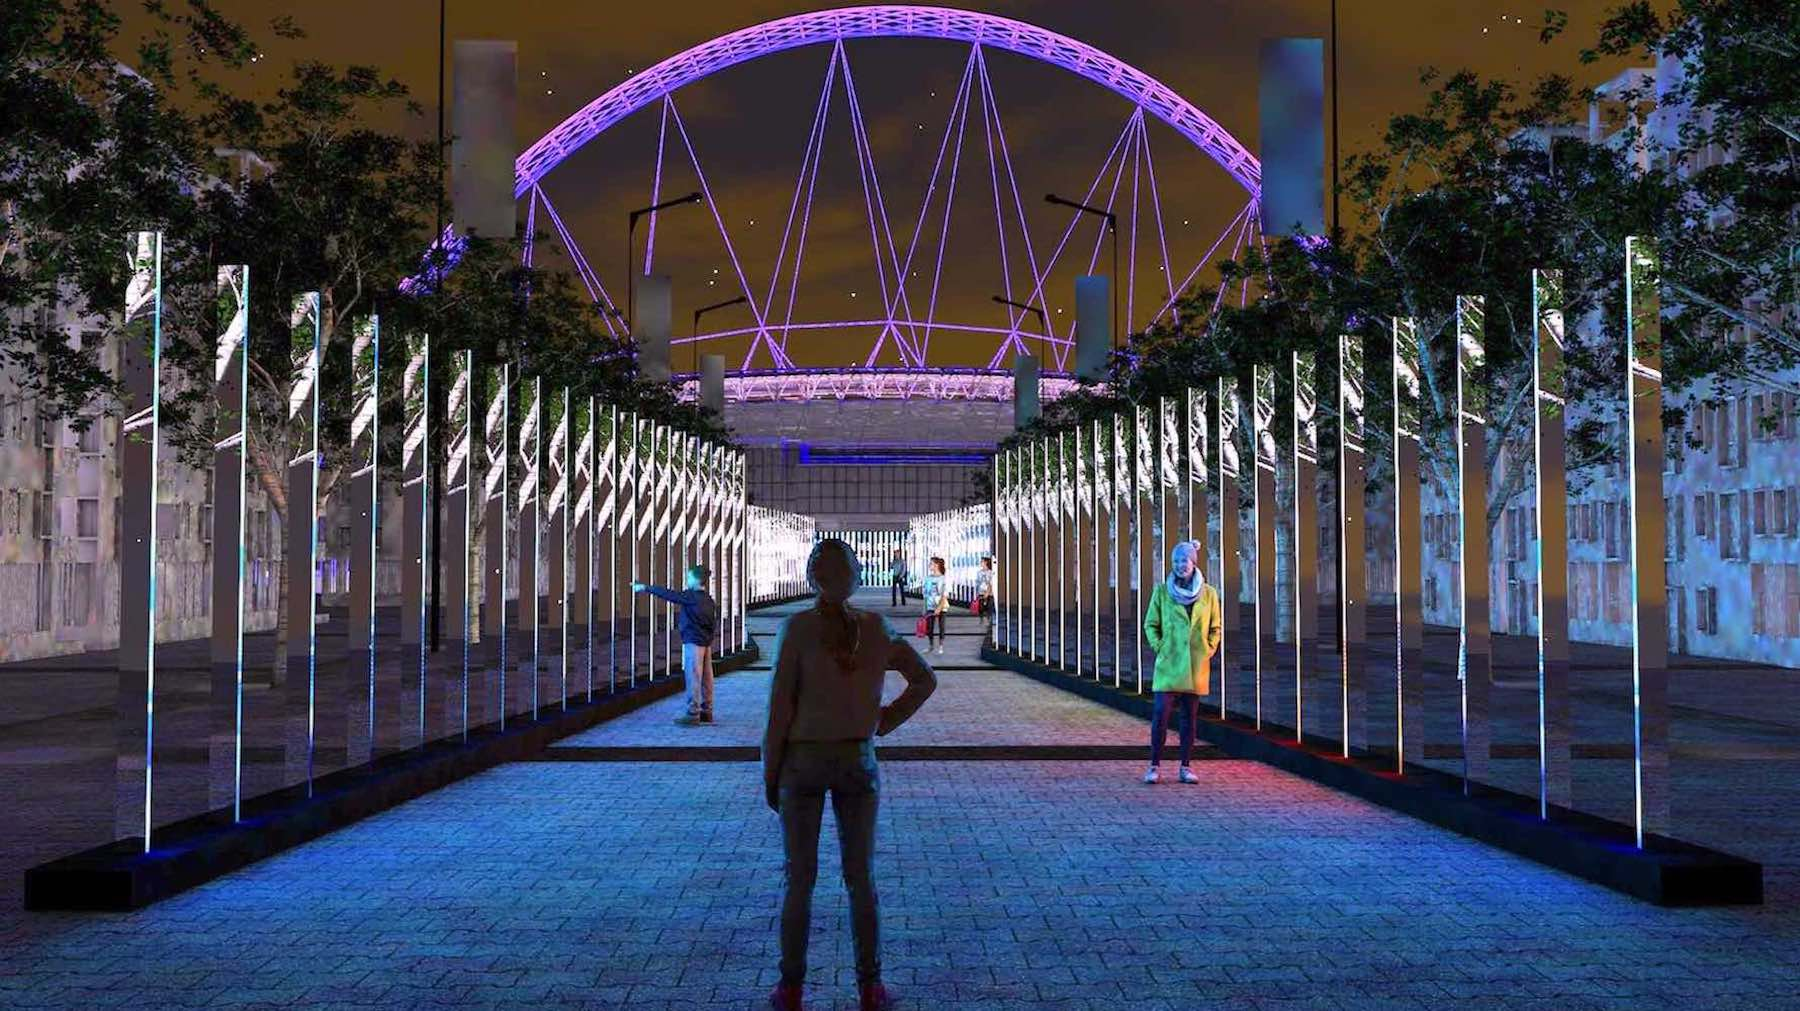 REFLECTIONS-OF-THE-FUTURE-LUCID-CREATES-WEMBLEY-WINTERFEST-HOME-PAGE-CAROUSEL